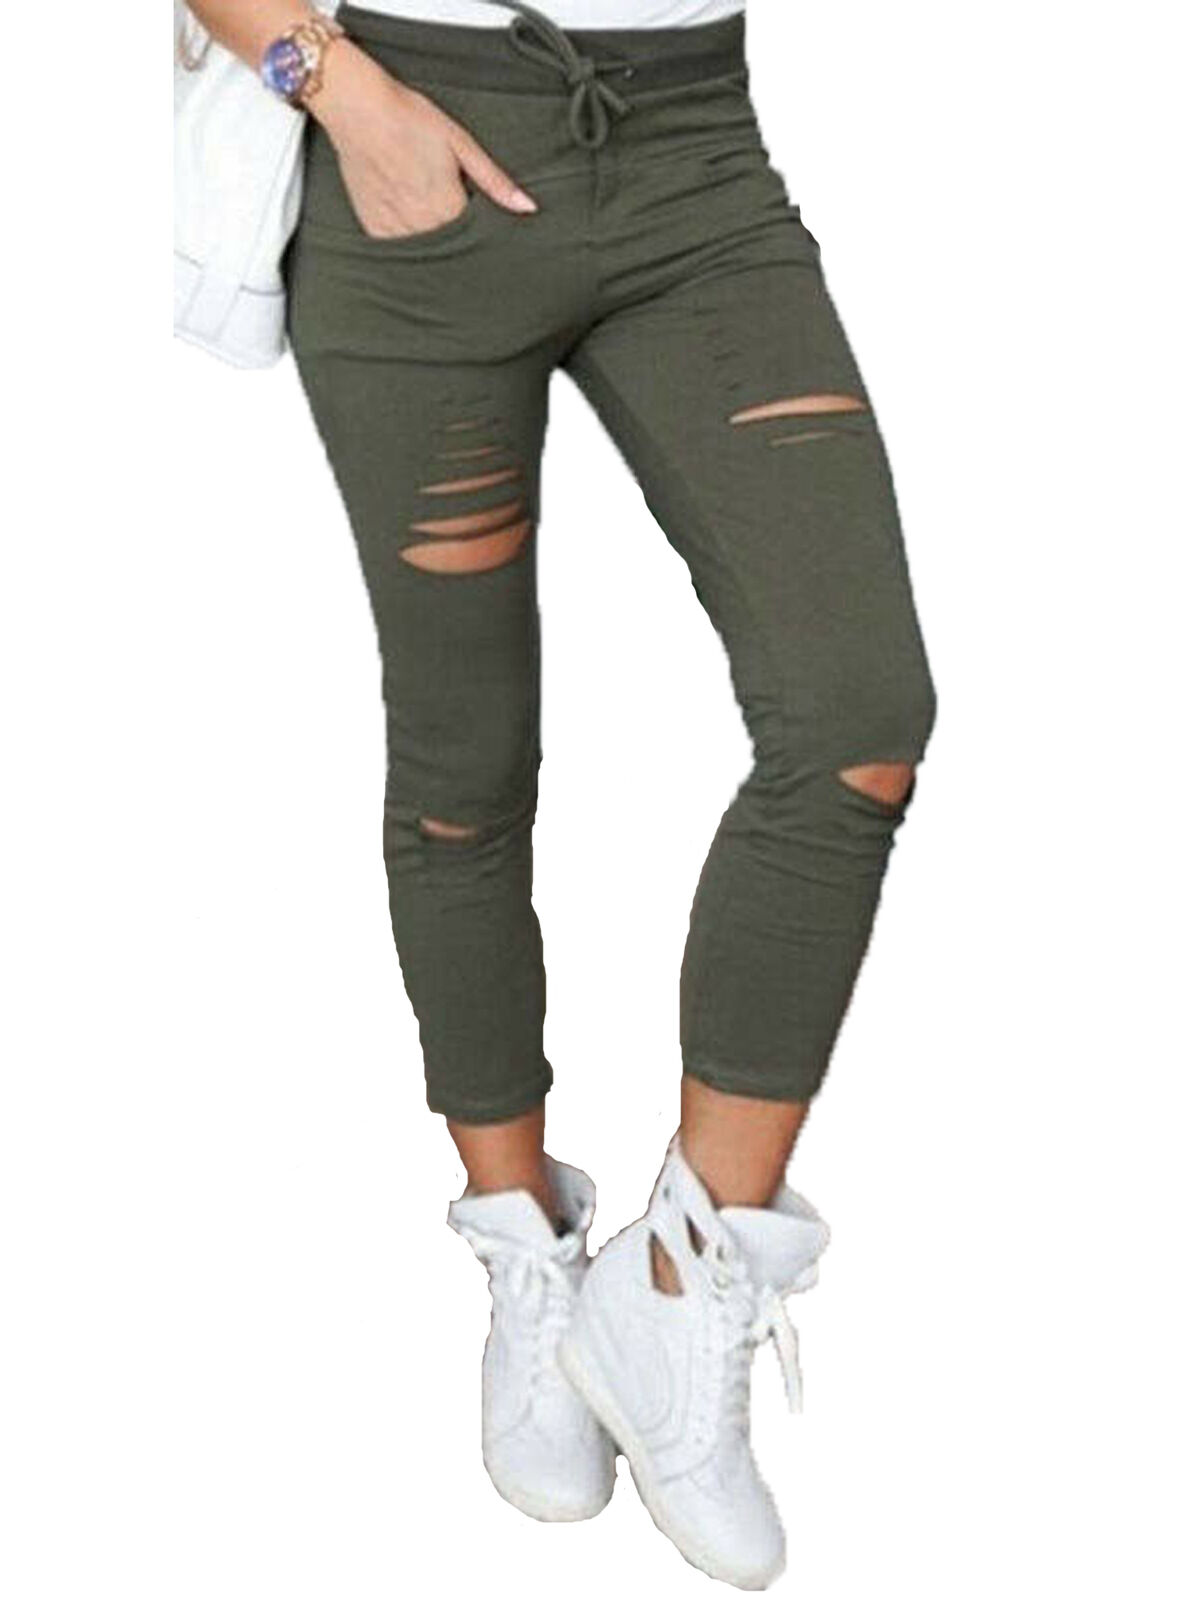 New Womens Grey Faded Slim Skinny Stretch Cargo Pants Fitted Combat Trousers